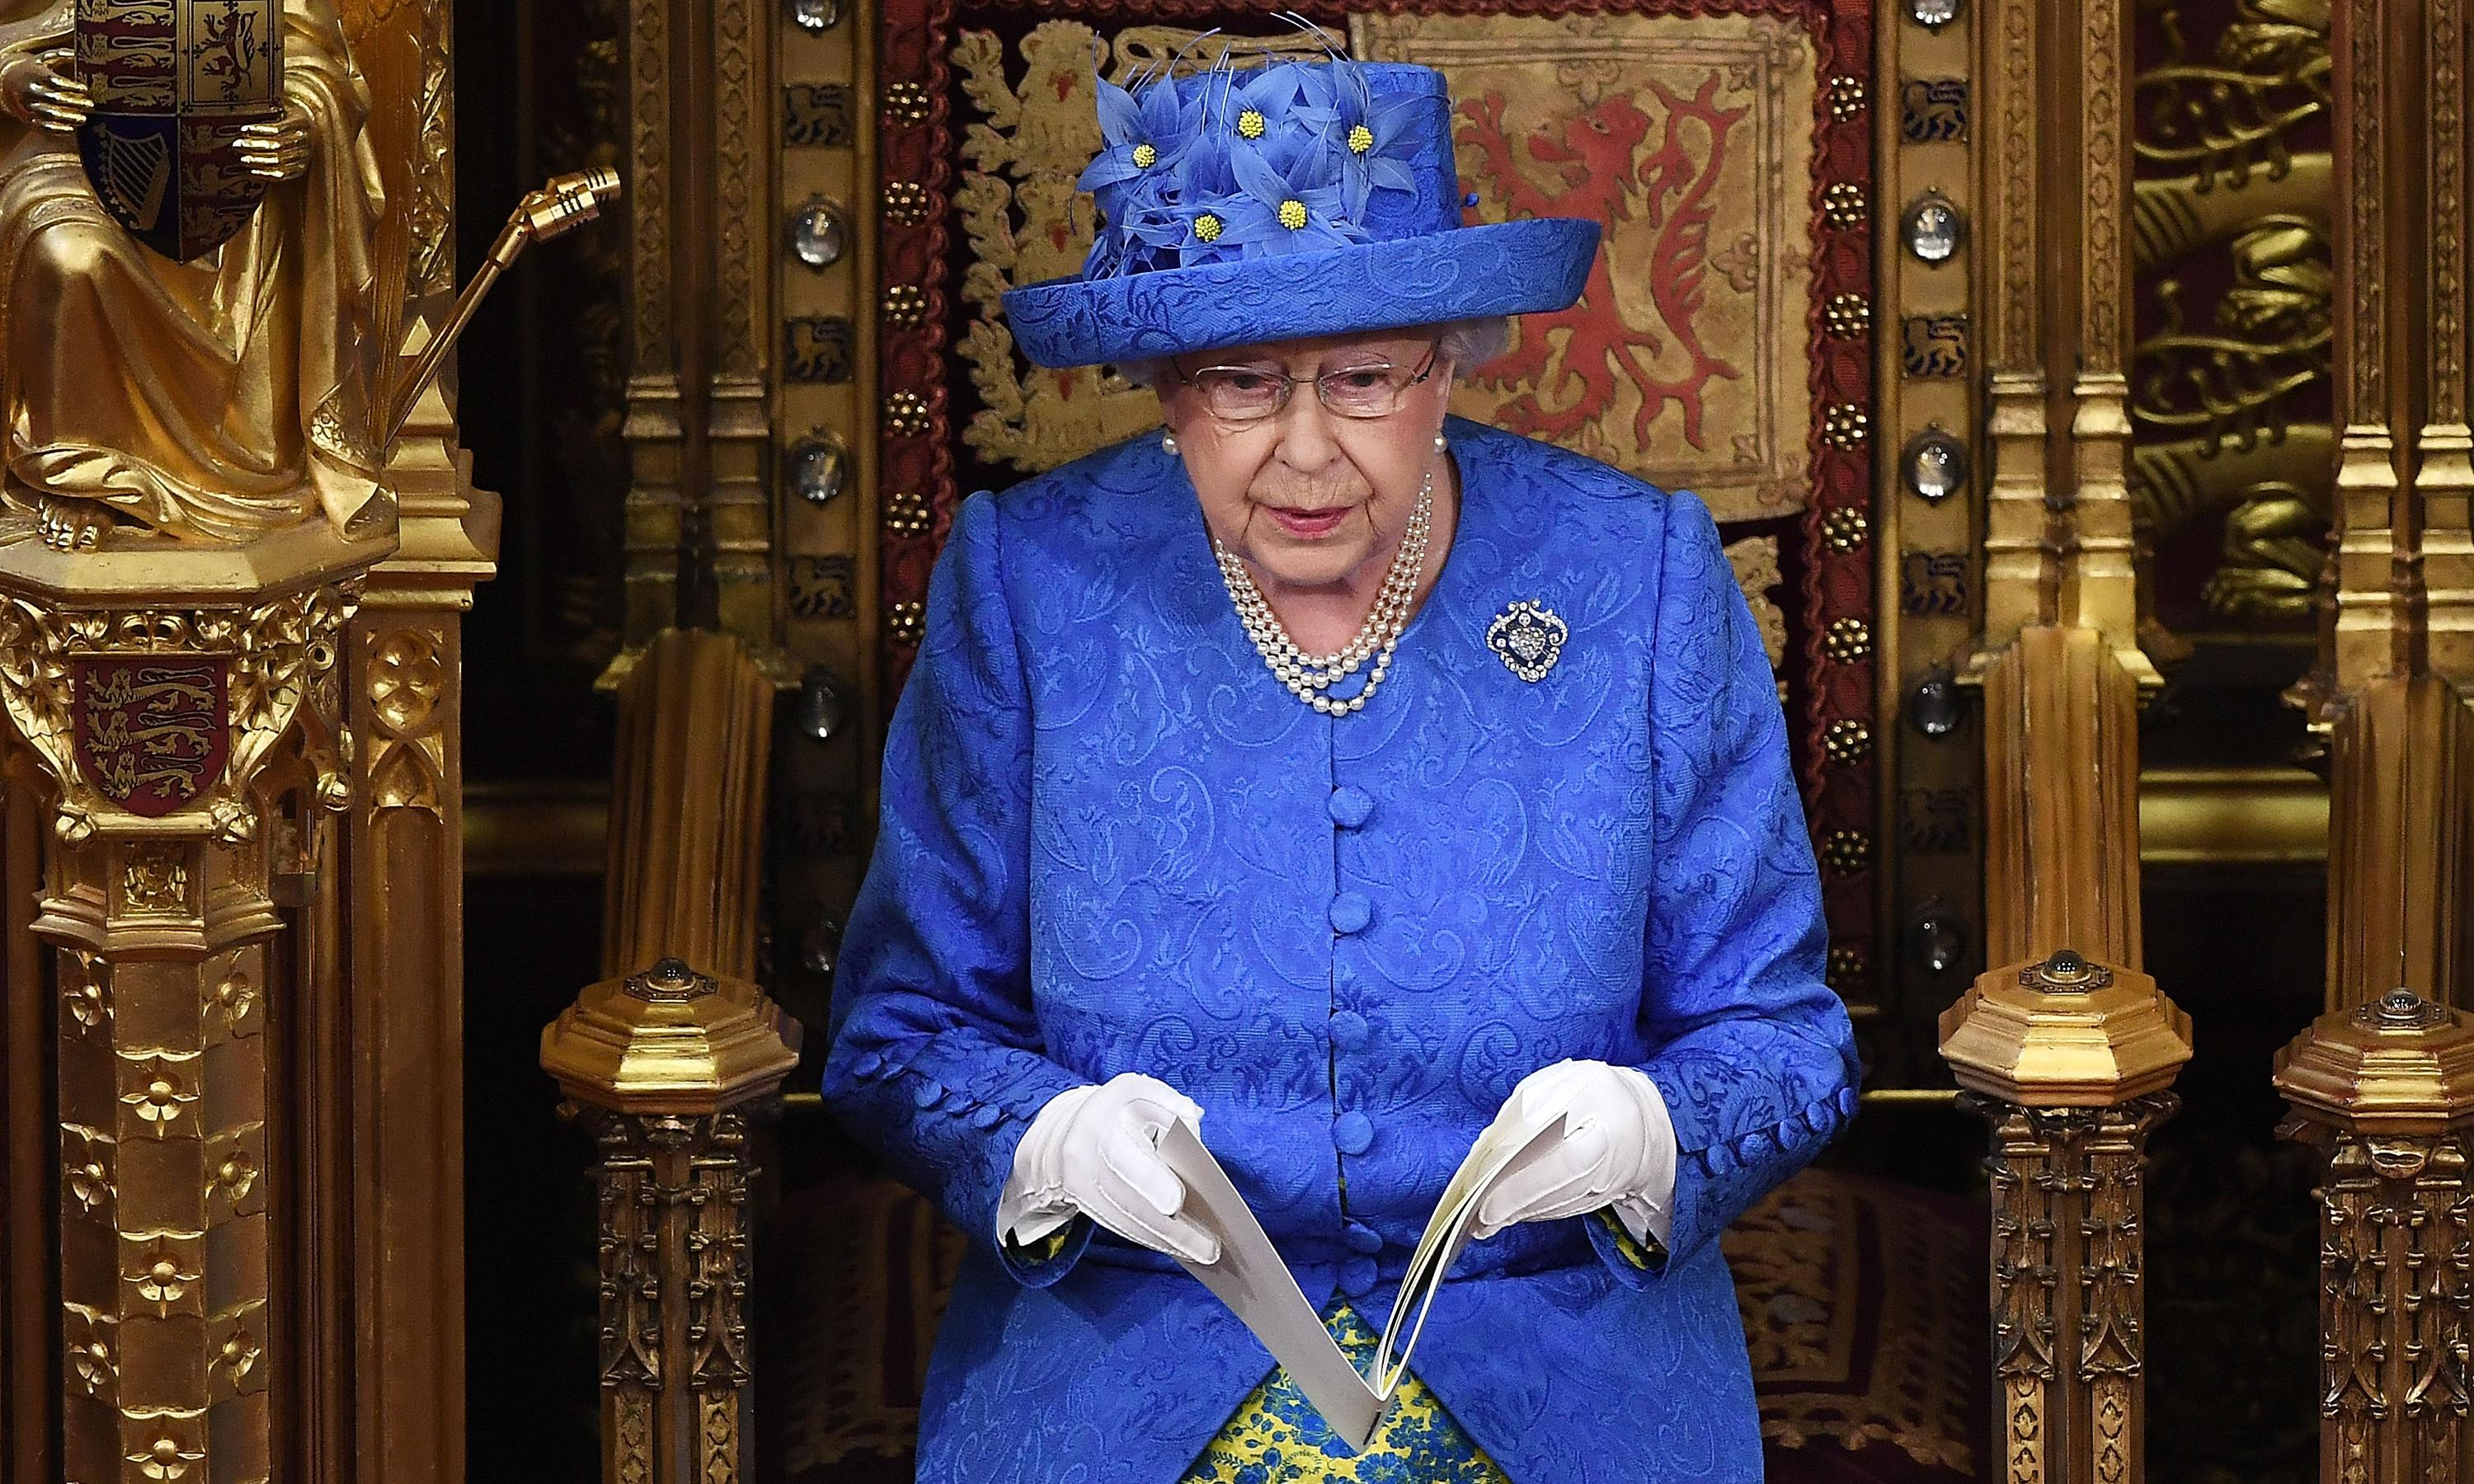 'Future of Britain is in Europe,' the Queen told Germany in 1988